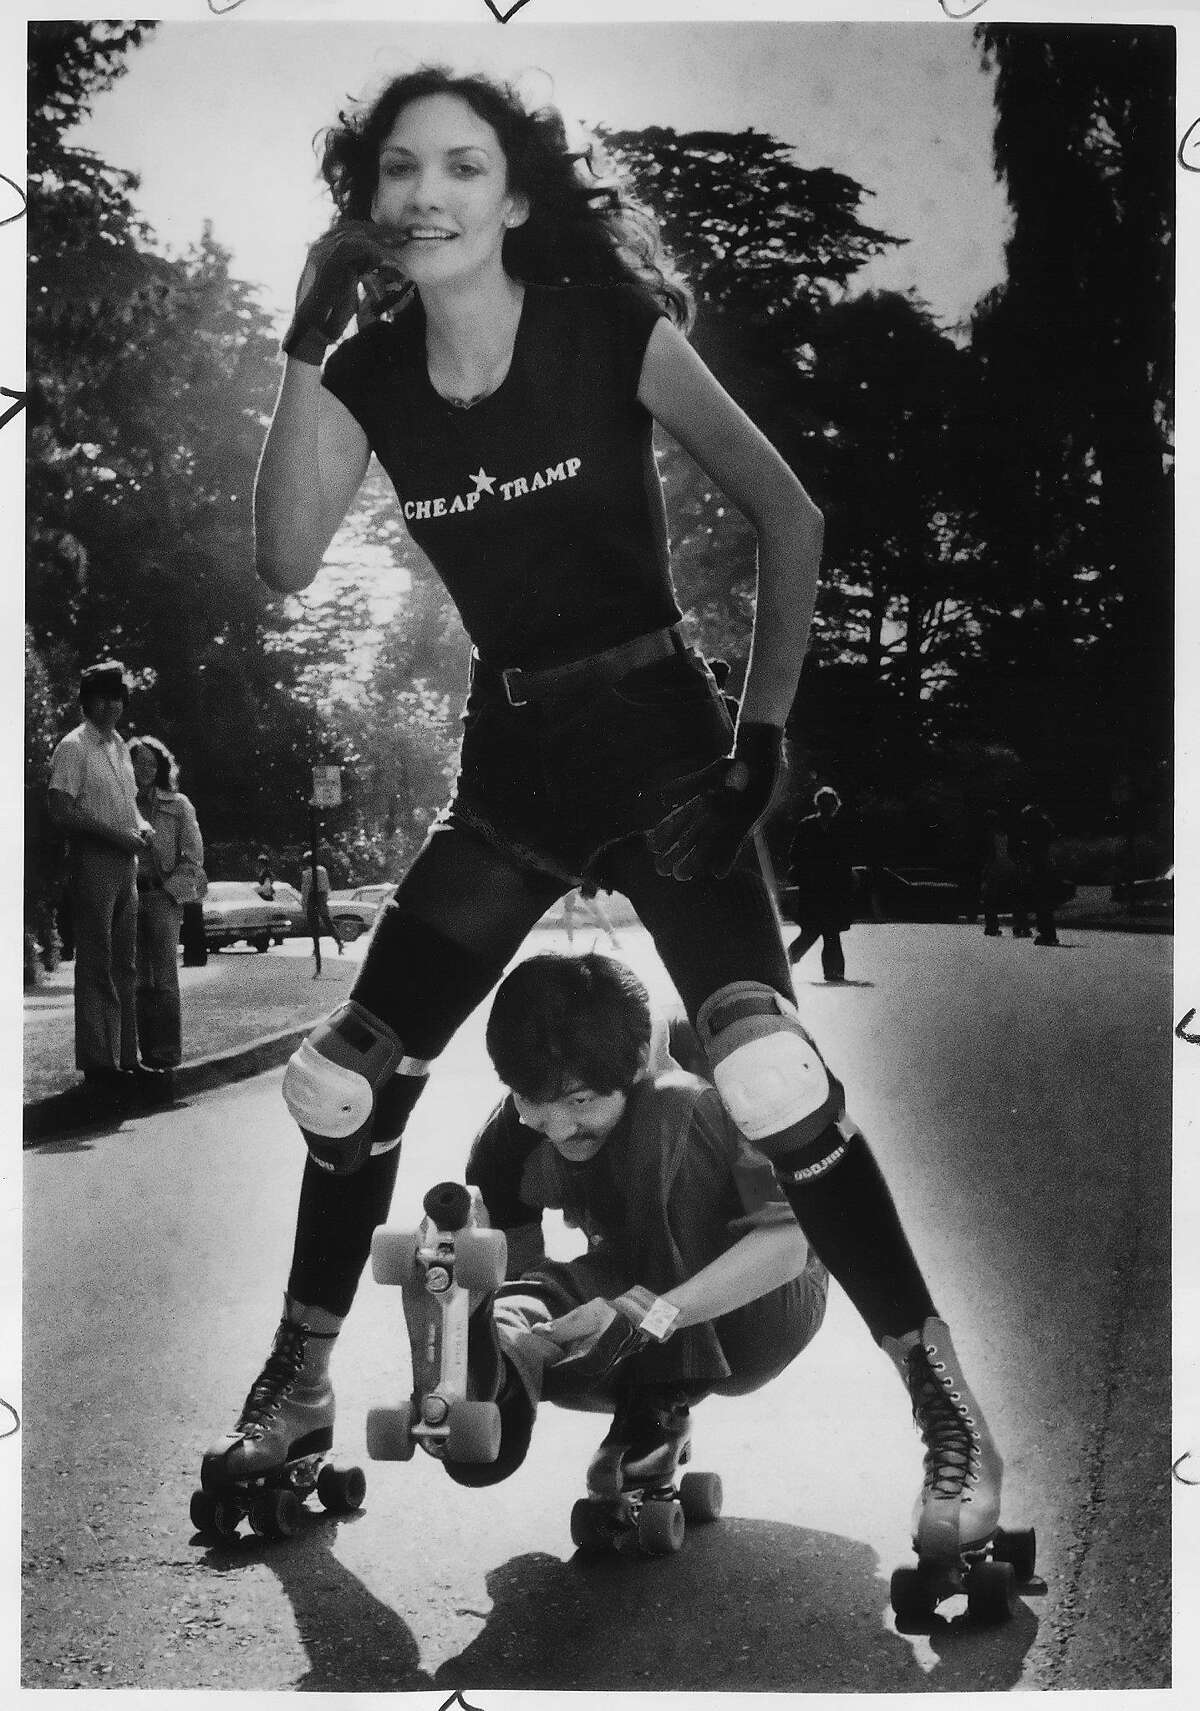 The birth of roller disco in Golden Gate Park Disco roller skating in the park is still a thing every Sunday, but it all started in the late '70s. According to the Chronicle, Golden Gate Park went from having zero roller skate vendors in 1977 to having 11 of them in 1979.